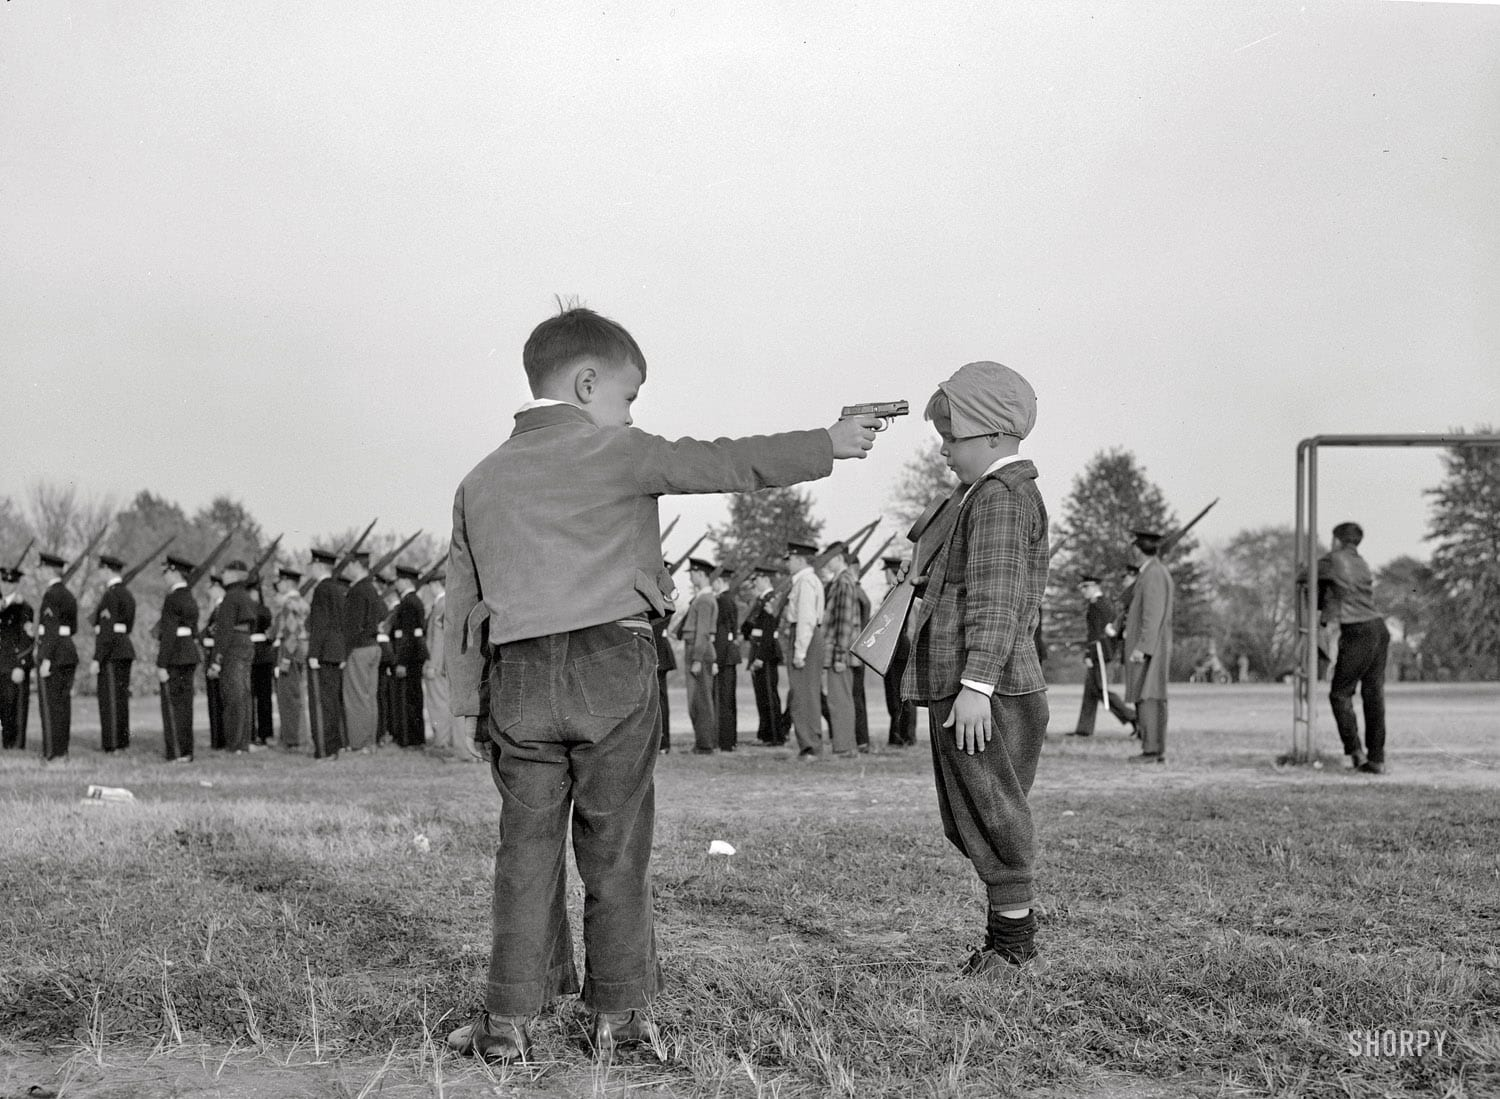 Children and a Mock Execution